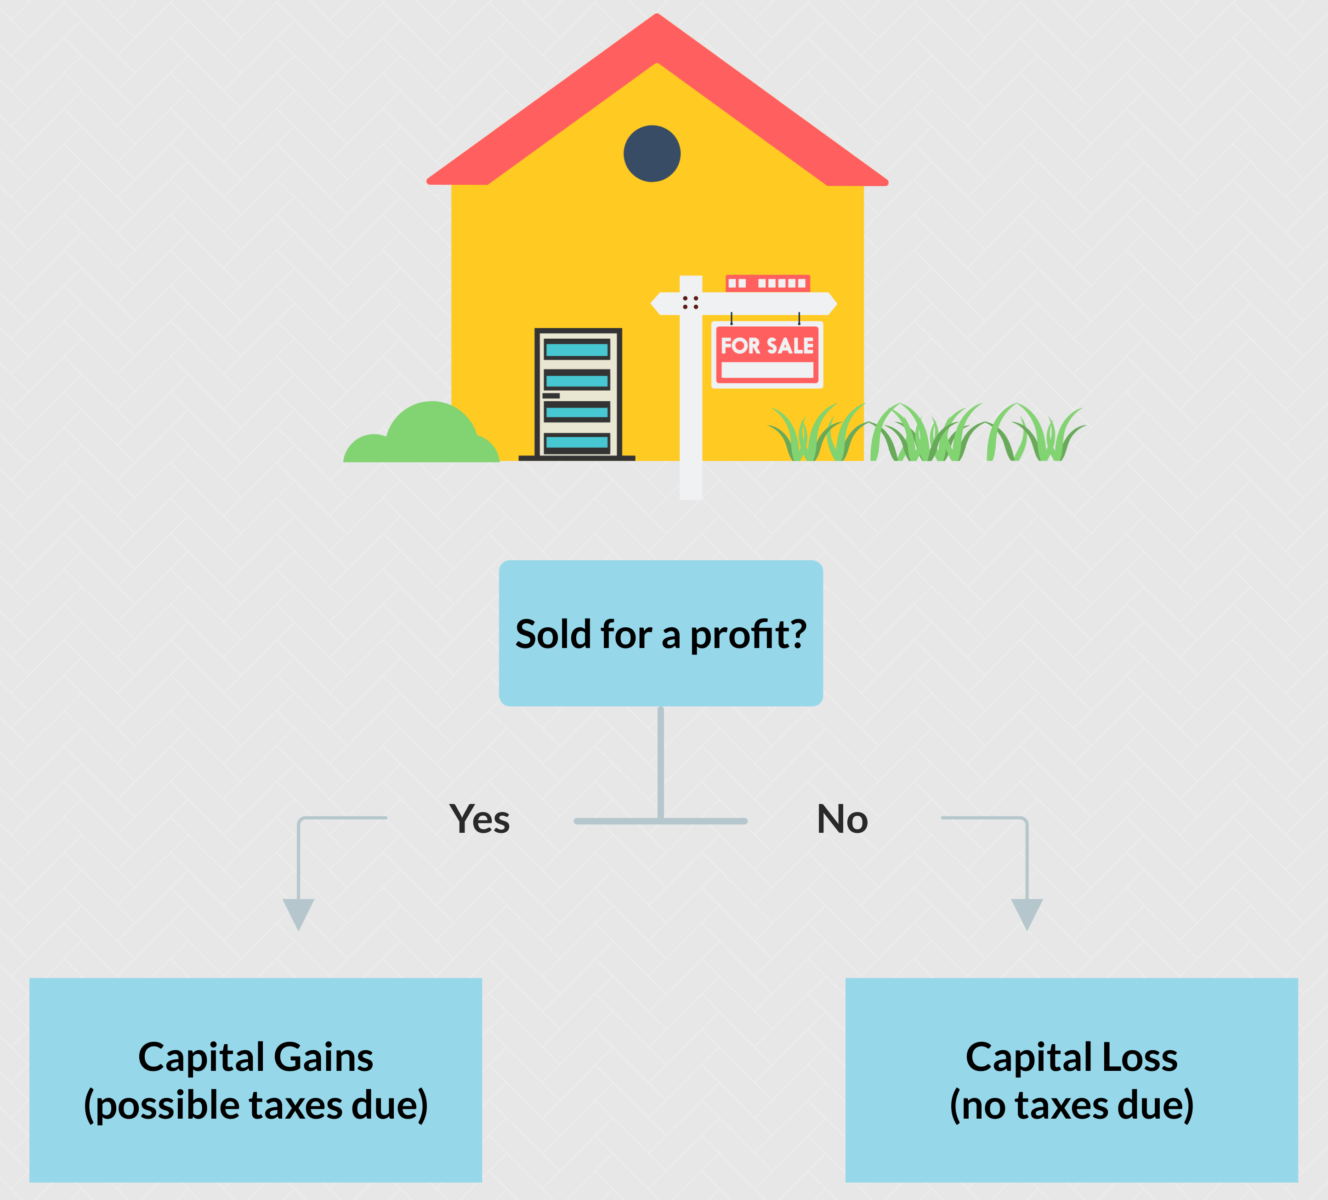 Yes/no decision chart showing that if a capital asset is sold for a profit, it is considered a capital gain. If it is sold for a loss, it is considered a capital loss